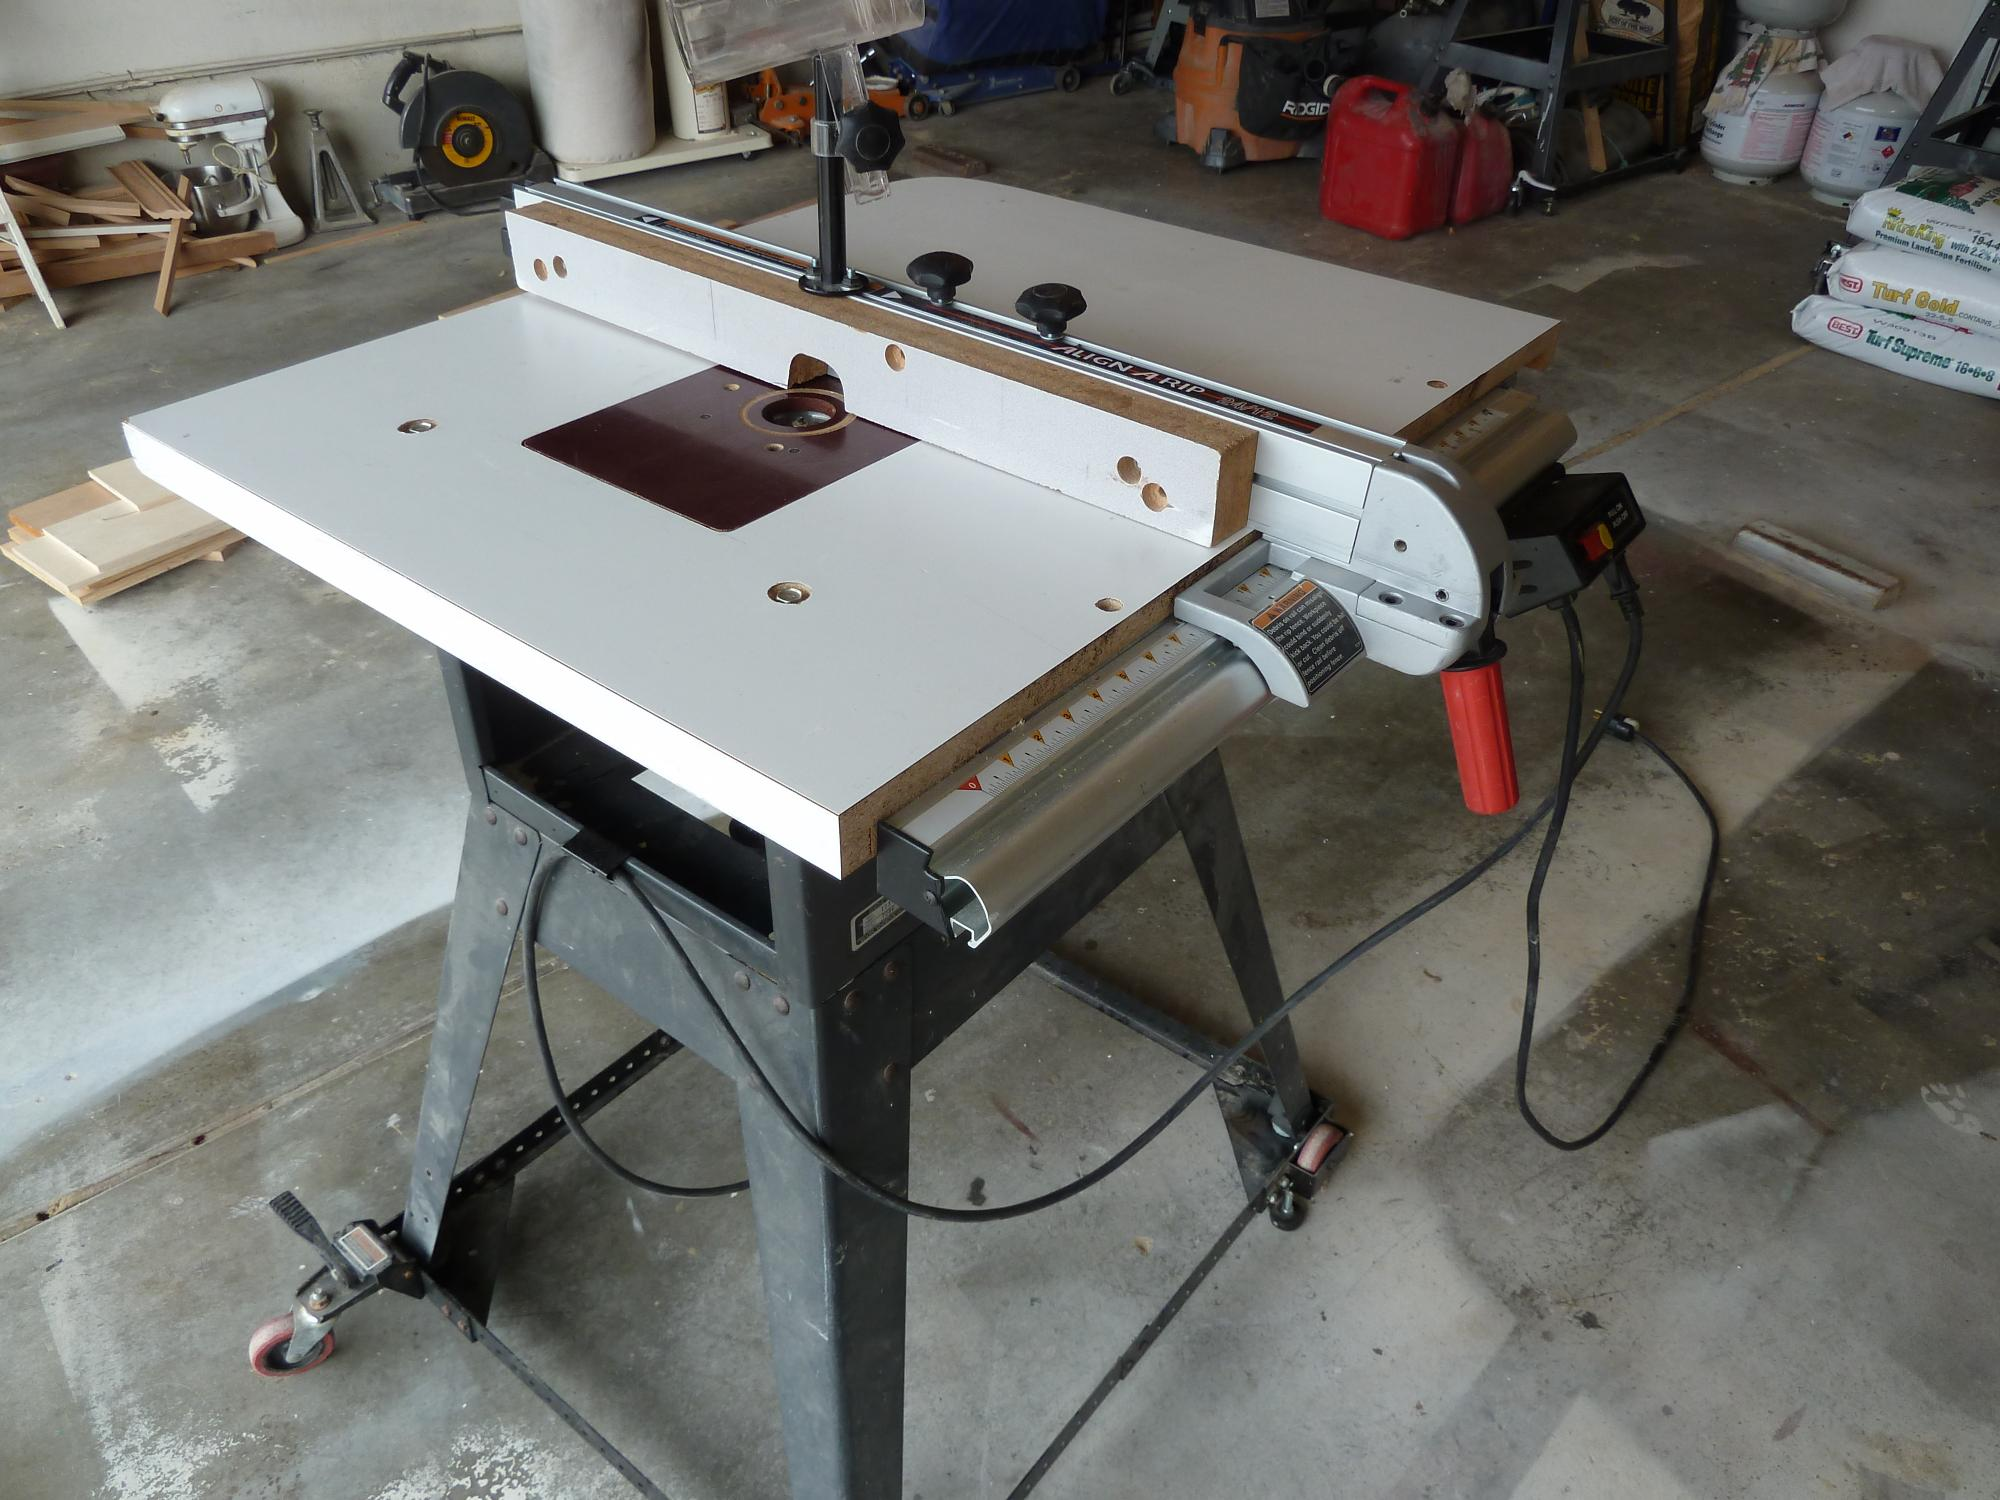 How to attach plunge router to table gallery wiring table and custom table for makita plunge router page 2 router forums attached thumbnails click image for larger keyboard keysfo Images